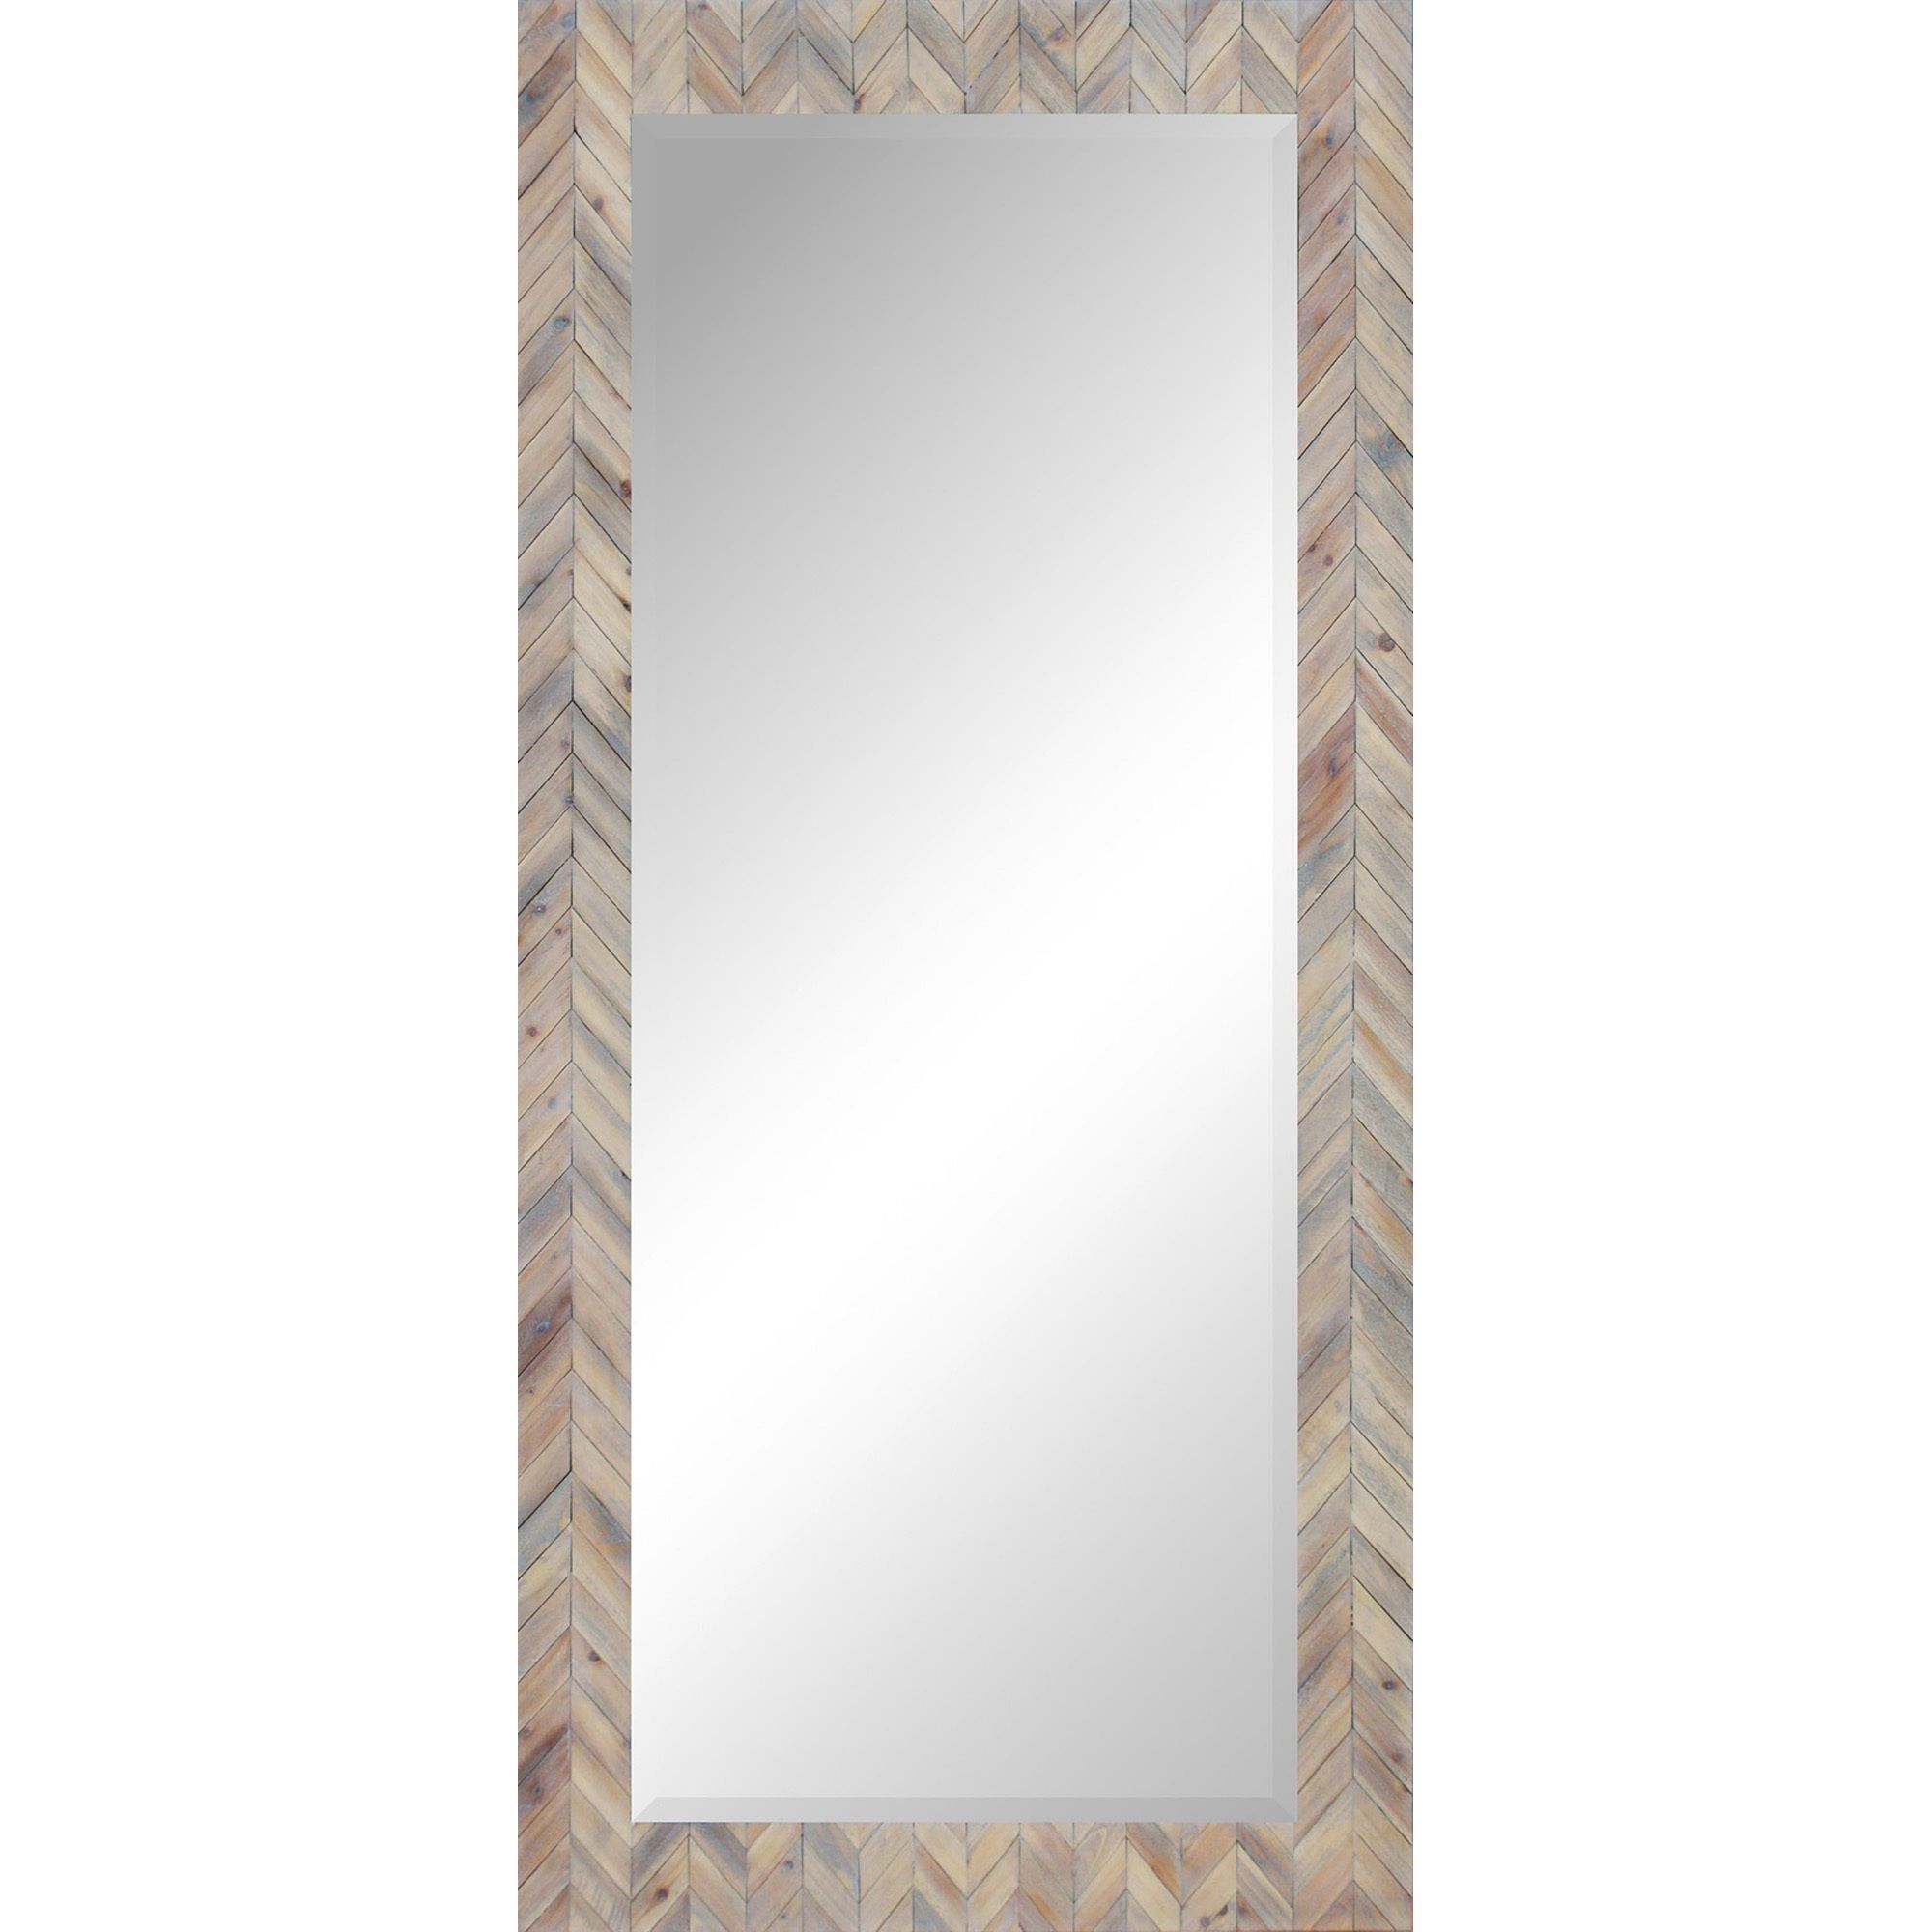 Chevrons Of White Washed Wood Define The Traditional Frame Of This